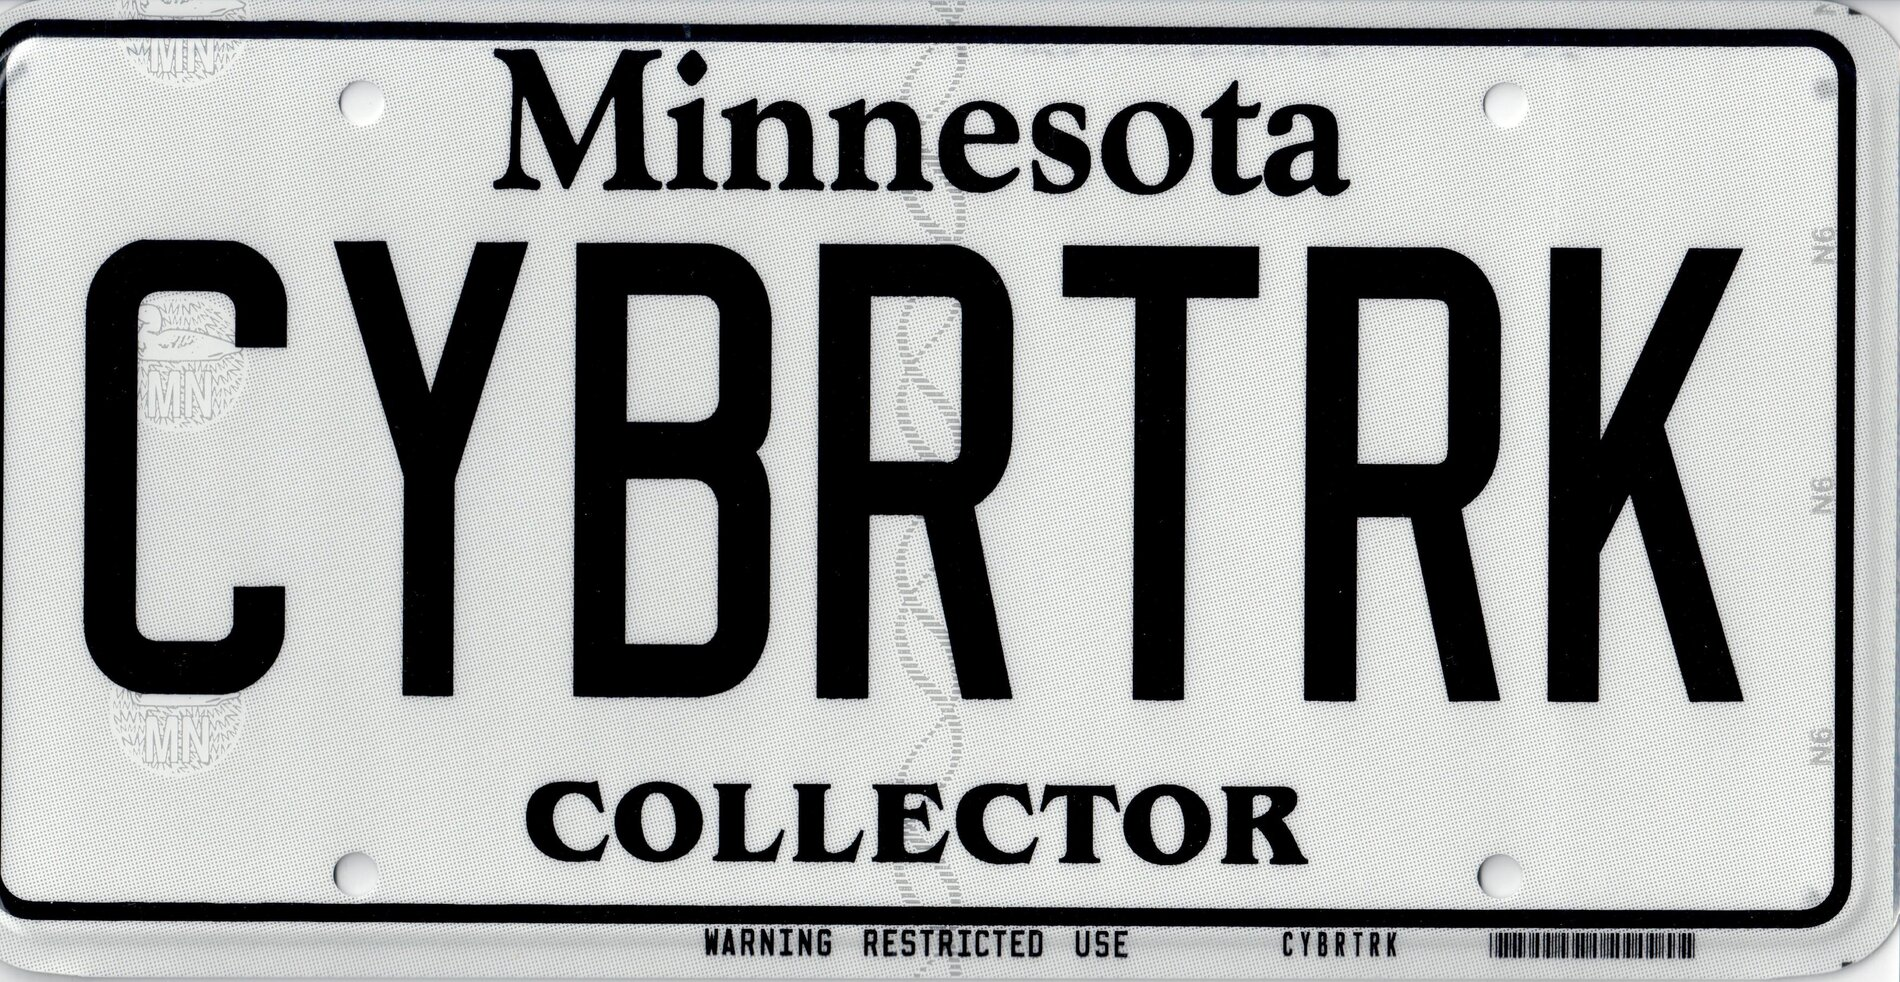 CYBRTRK license plate Collector MN A4.jpg